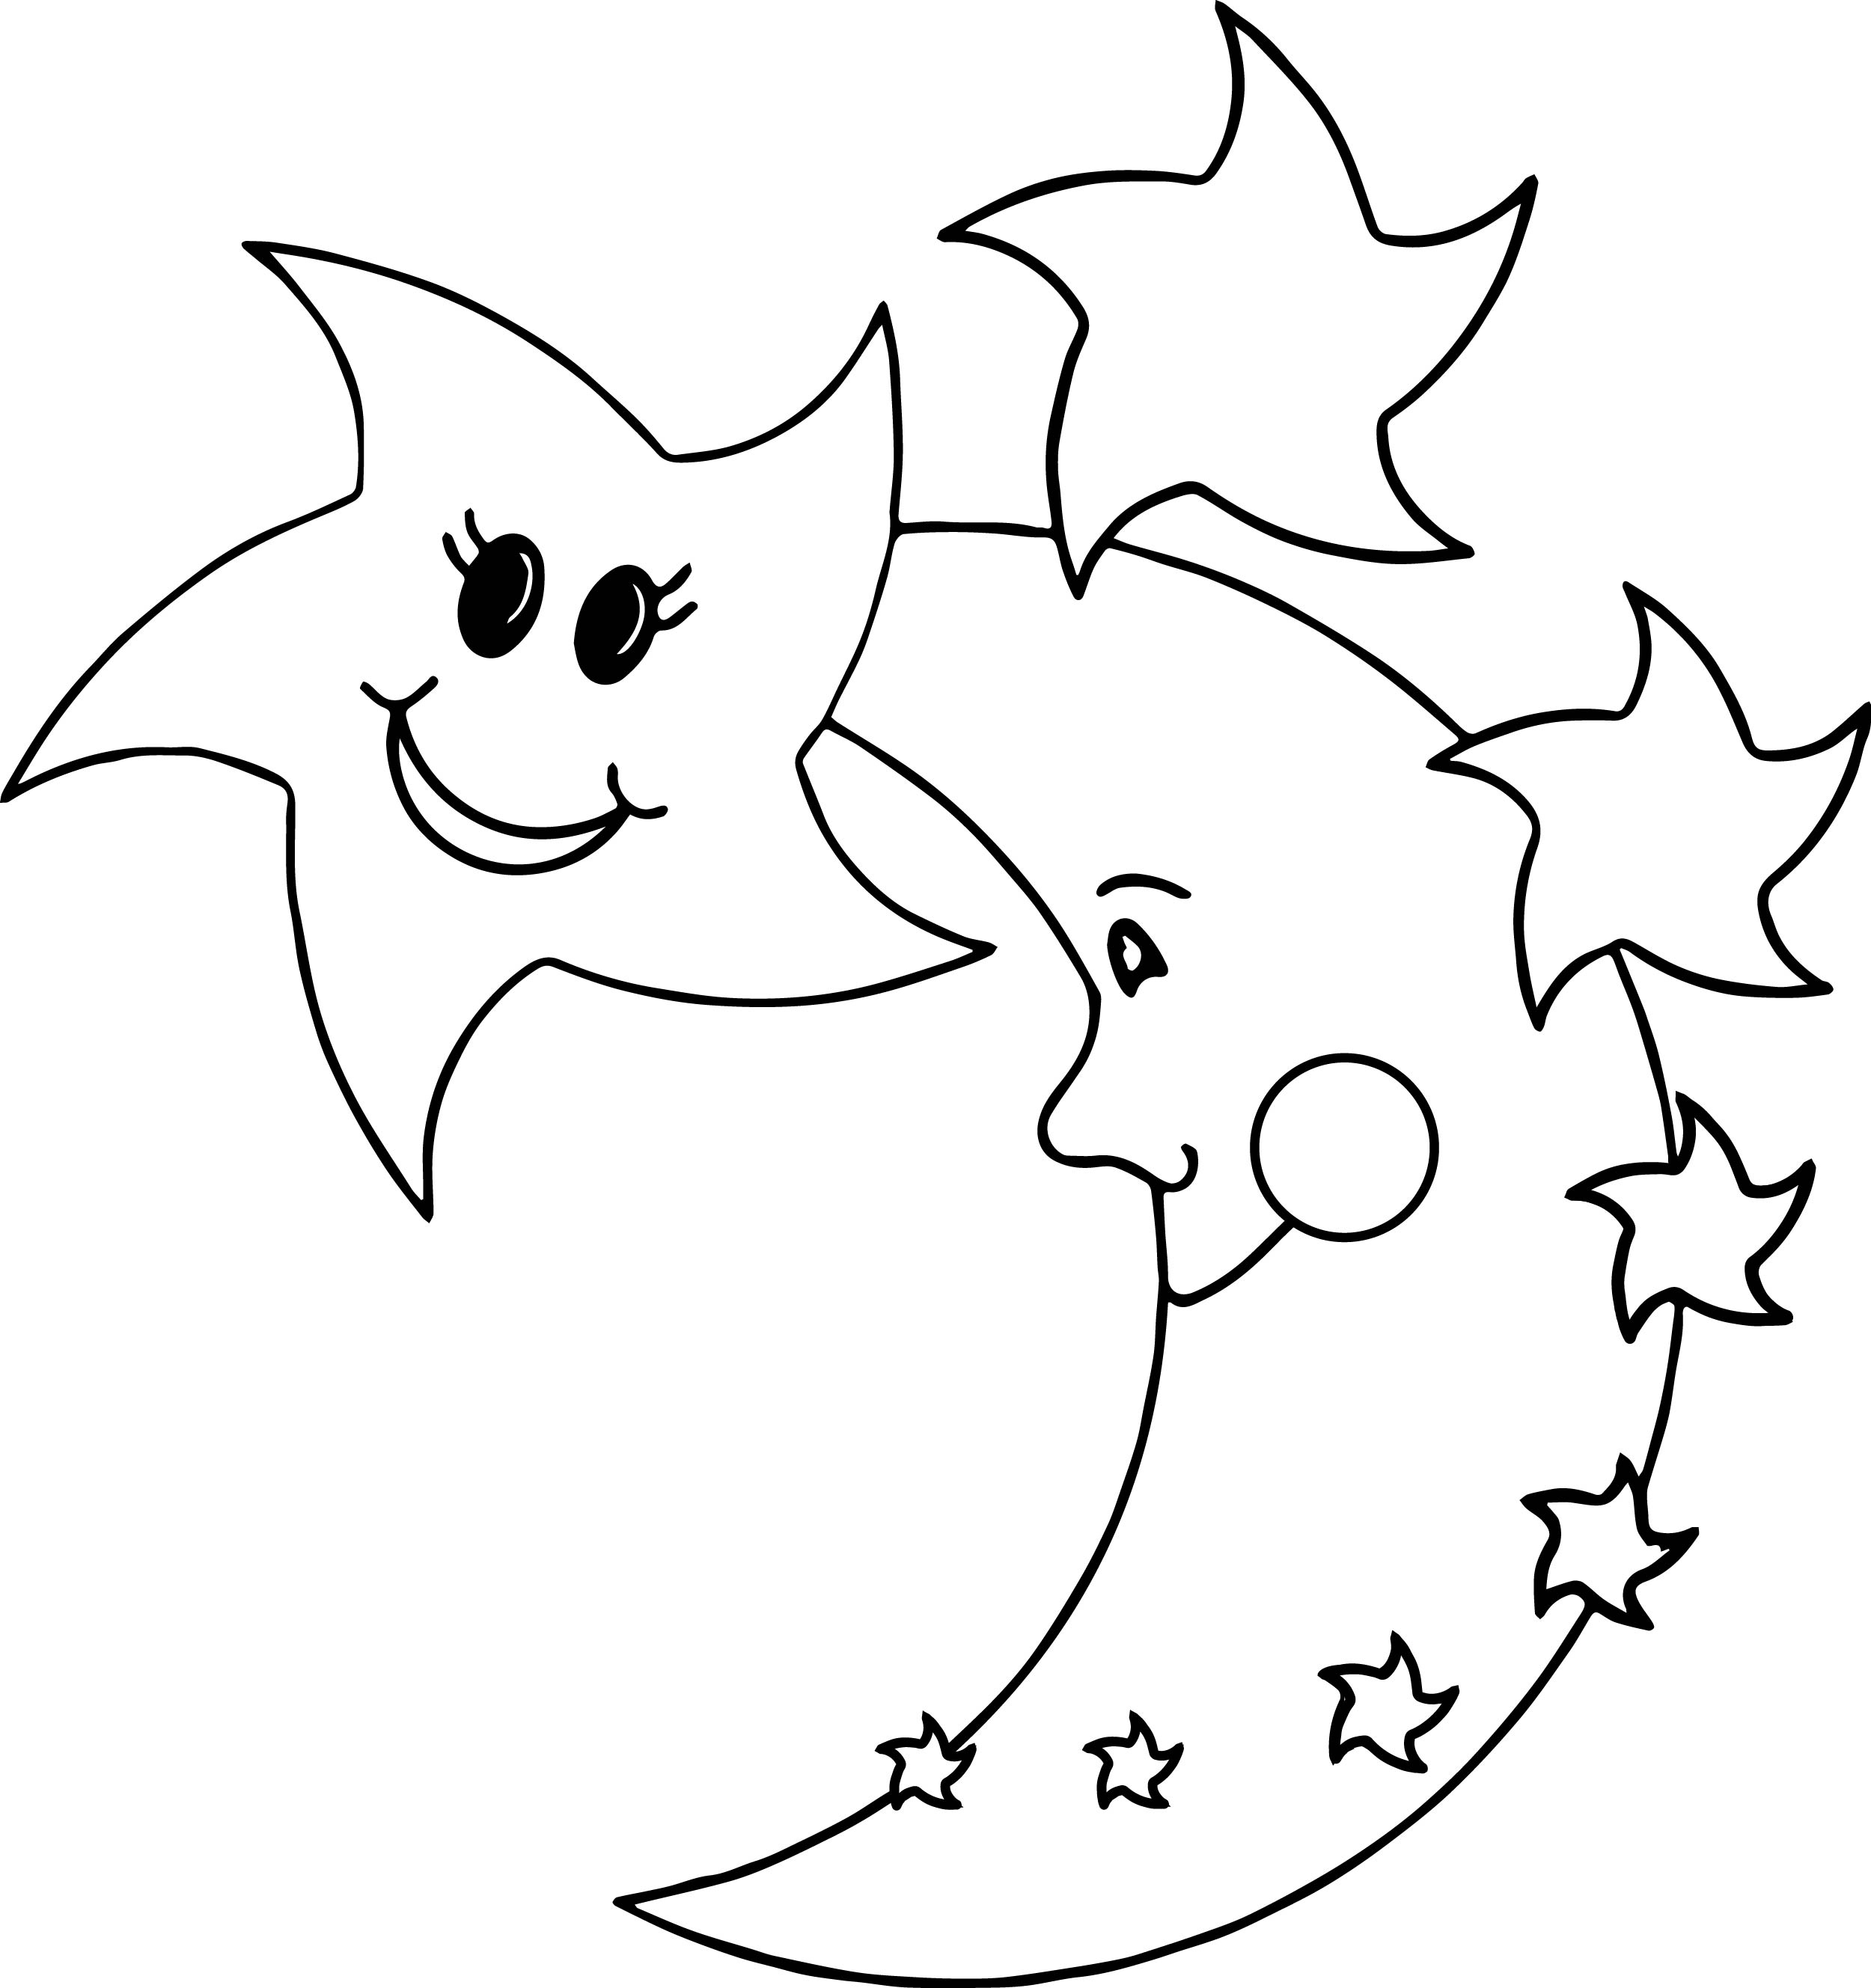 27 Moon and Stars Coloring Pages Collections FREE COLORING PAGES